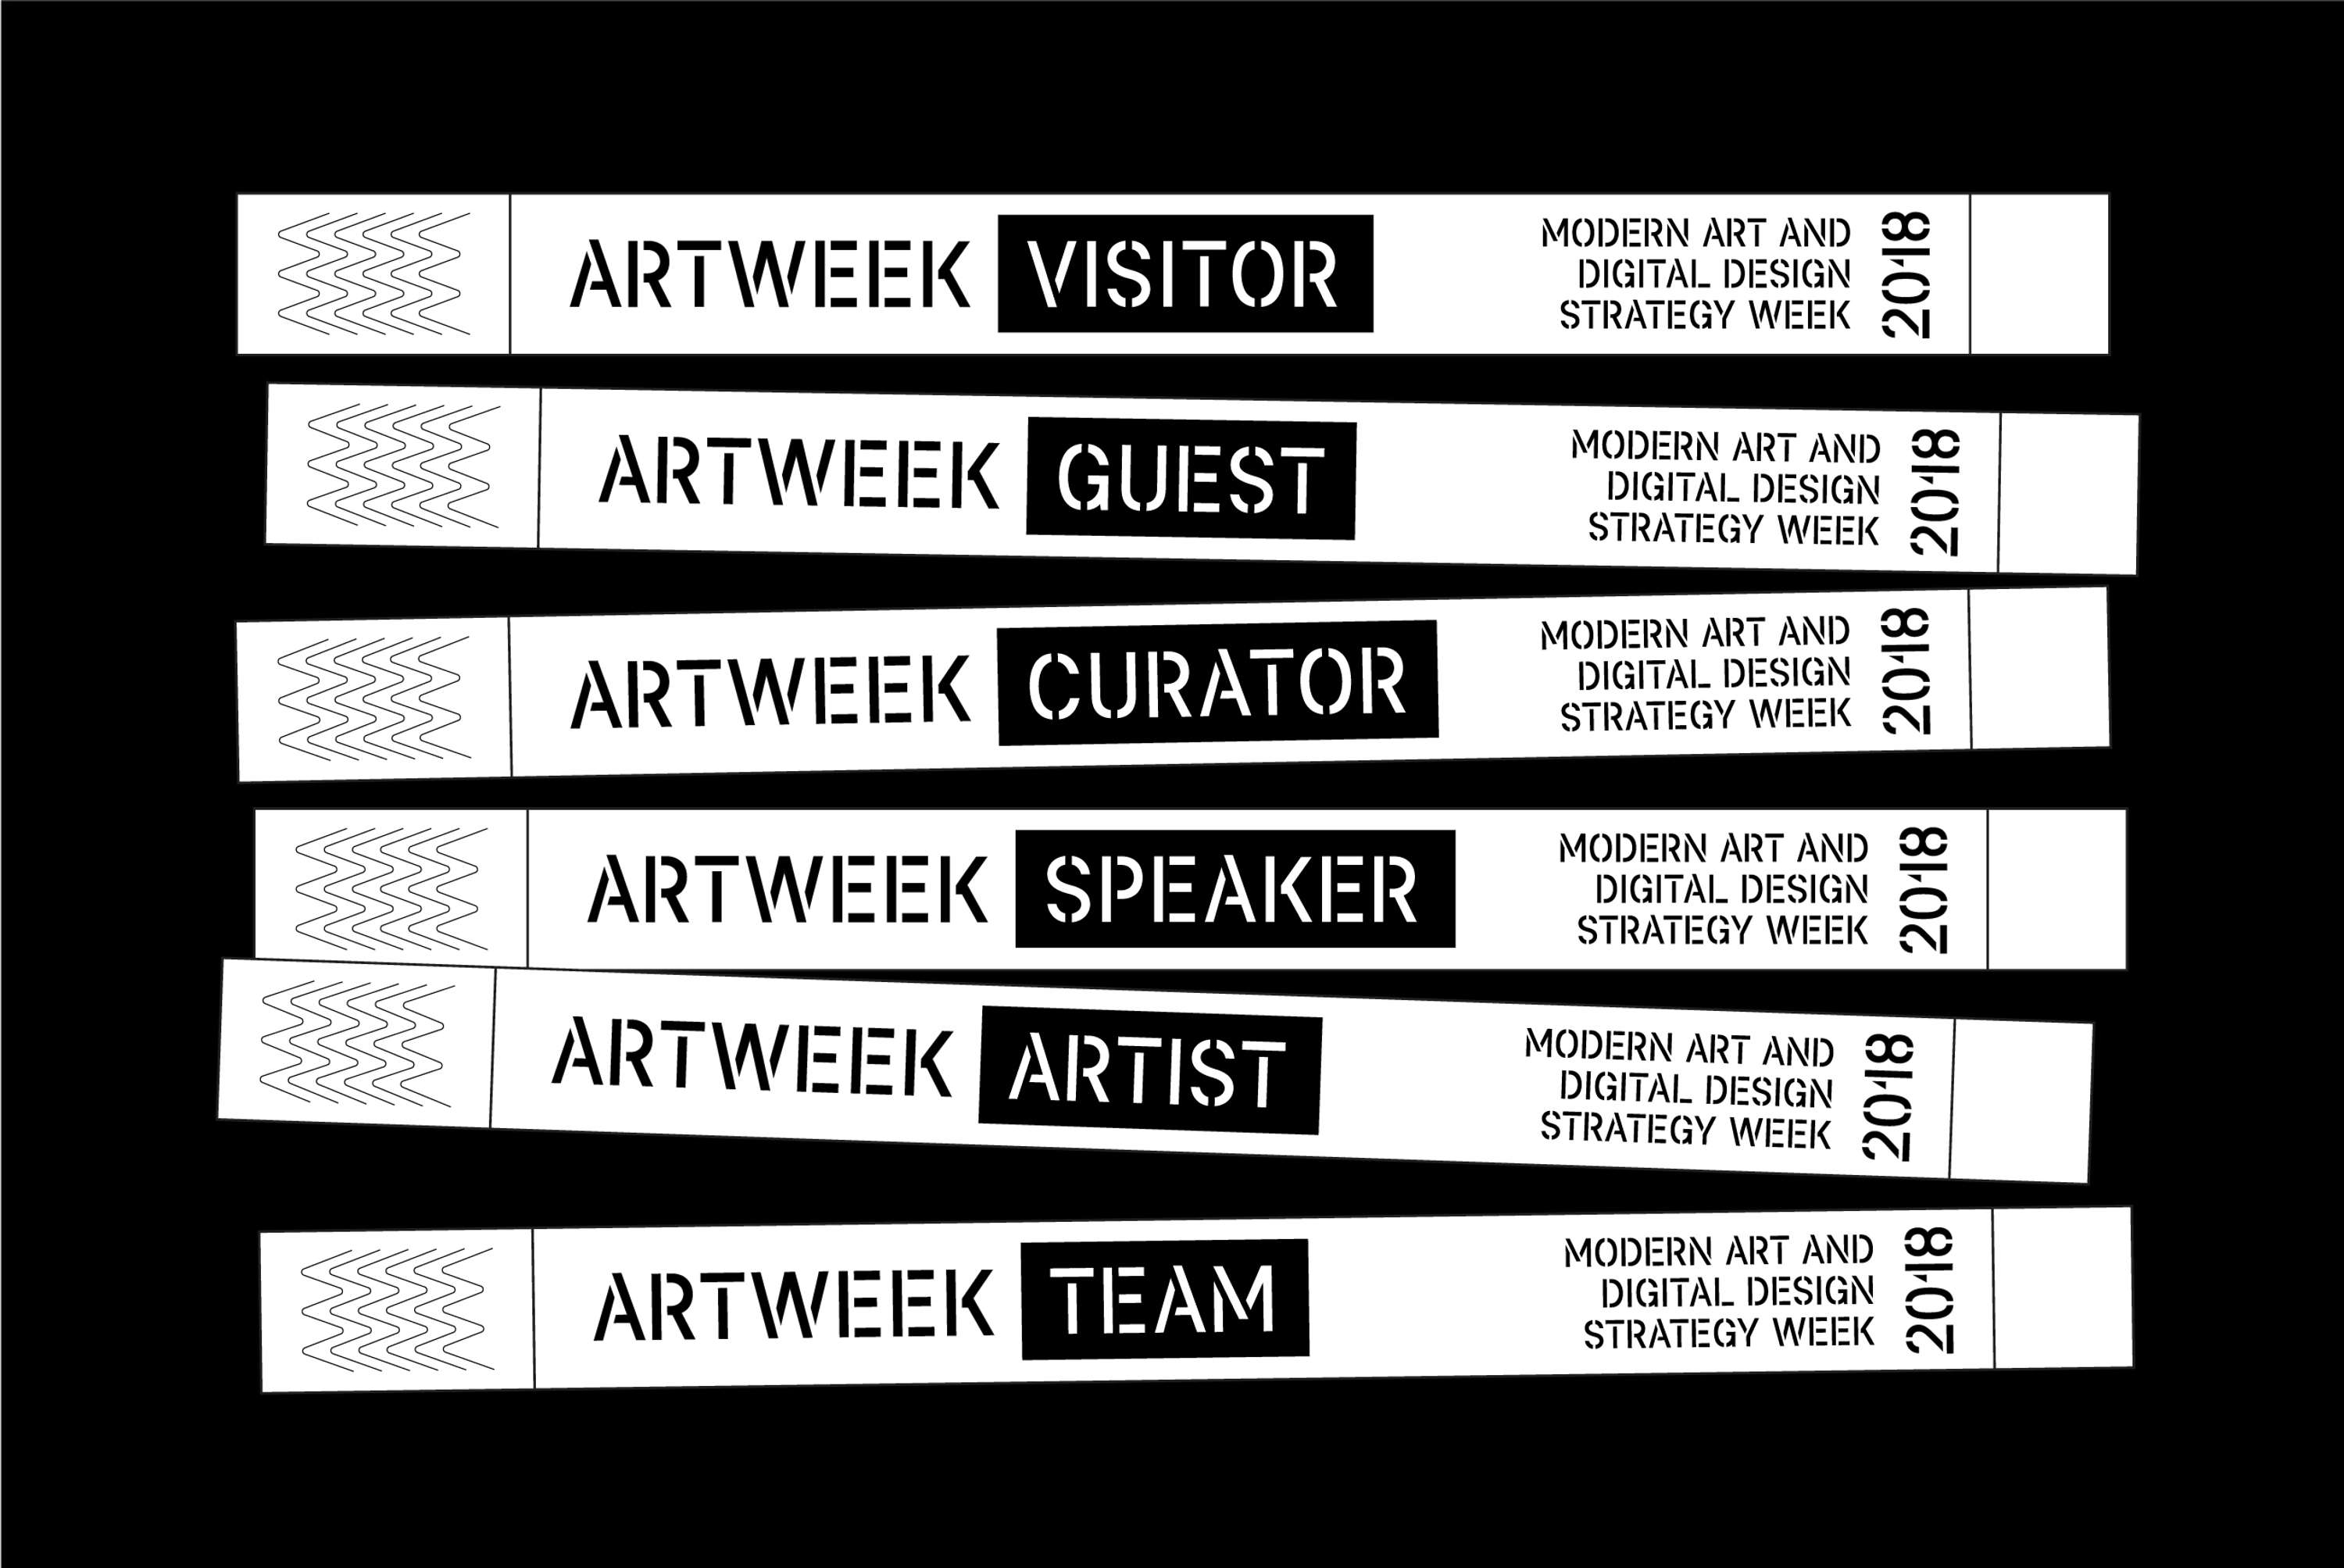 Modern Art & Digital Design Strategy Week 2018 | The Dots